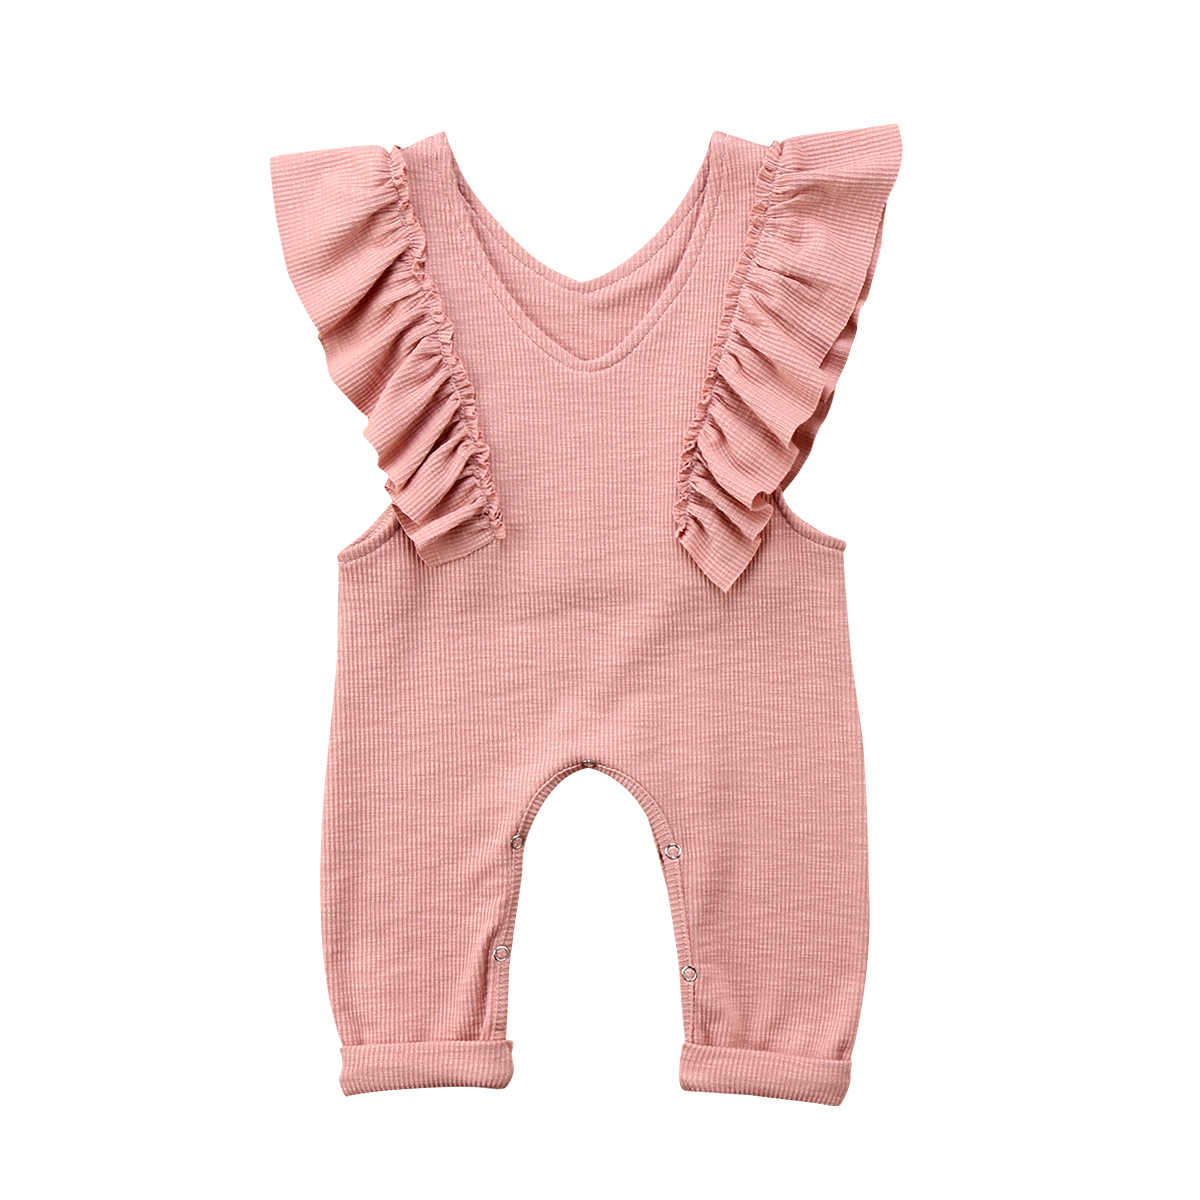 ee10a6db4359e Detail Feedback Questions about Baby Girl Overalls Ruffle Knitted Romper  Sleeveless Jumpsuit Kid Overalls Long Pants Outfit Lovely Children Girl  Clothes on ...